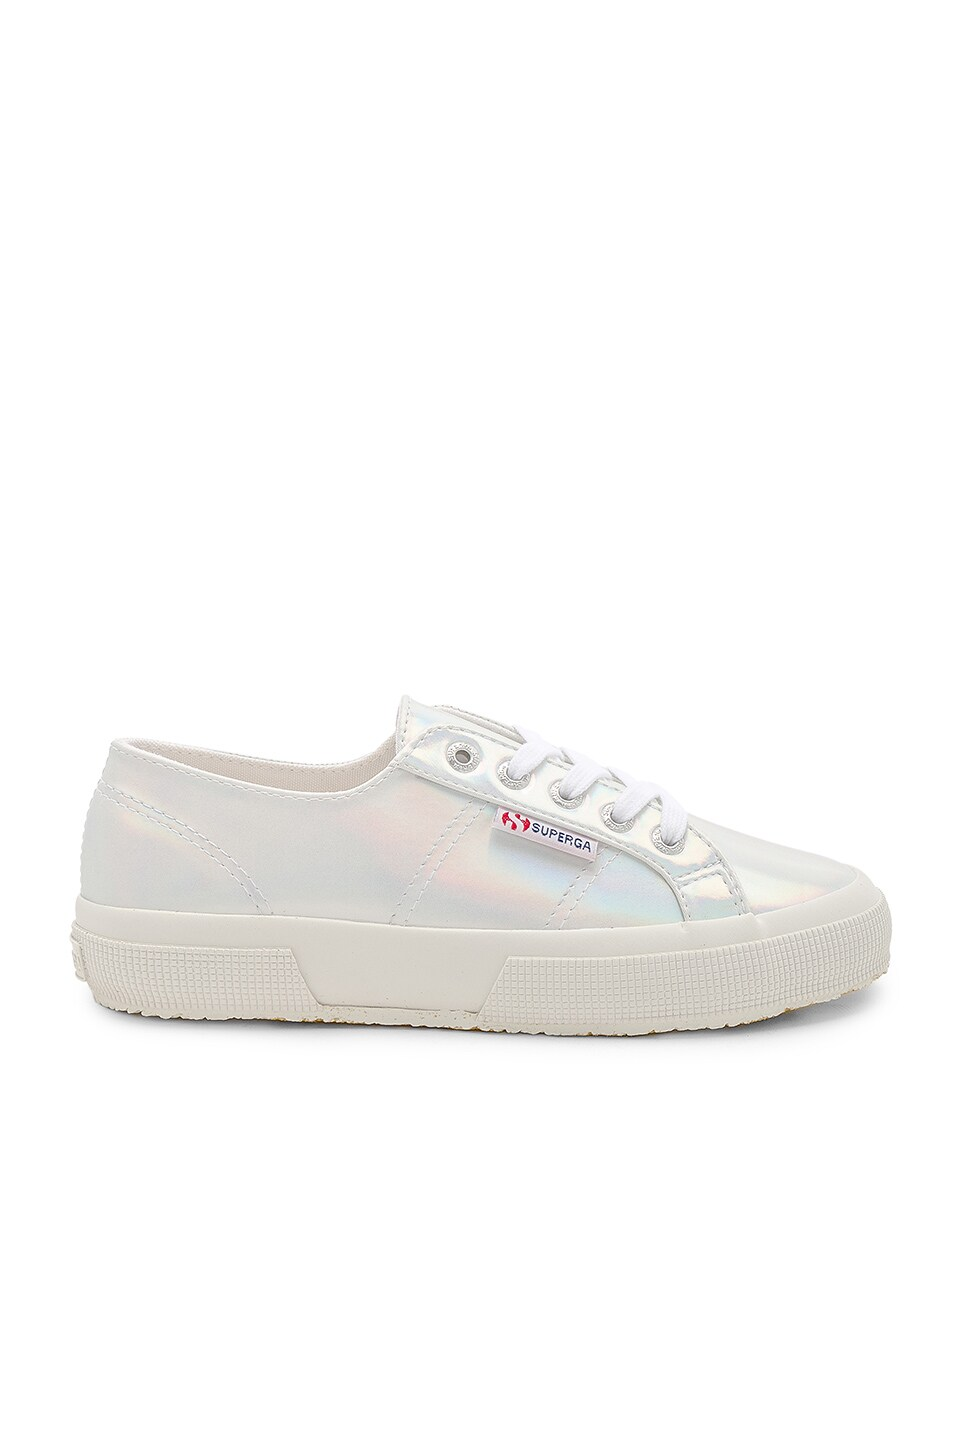 Superga 2750 Mirror Iridescent Sneaker in Iridescent